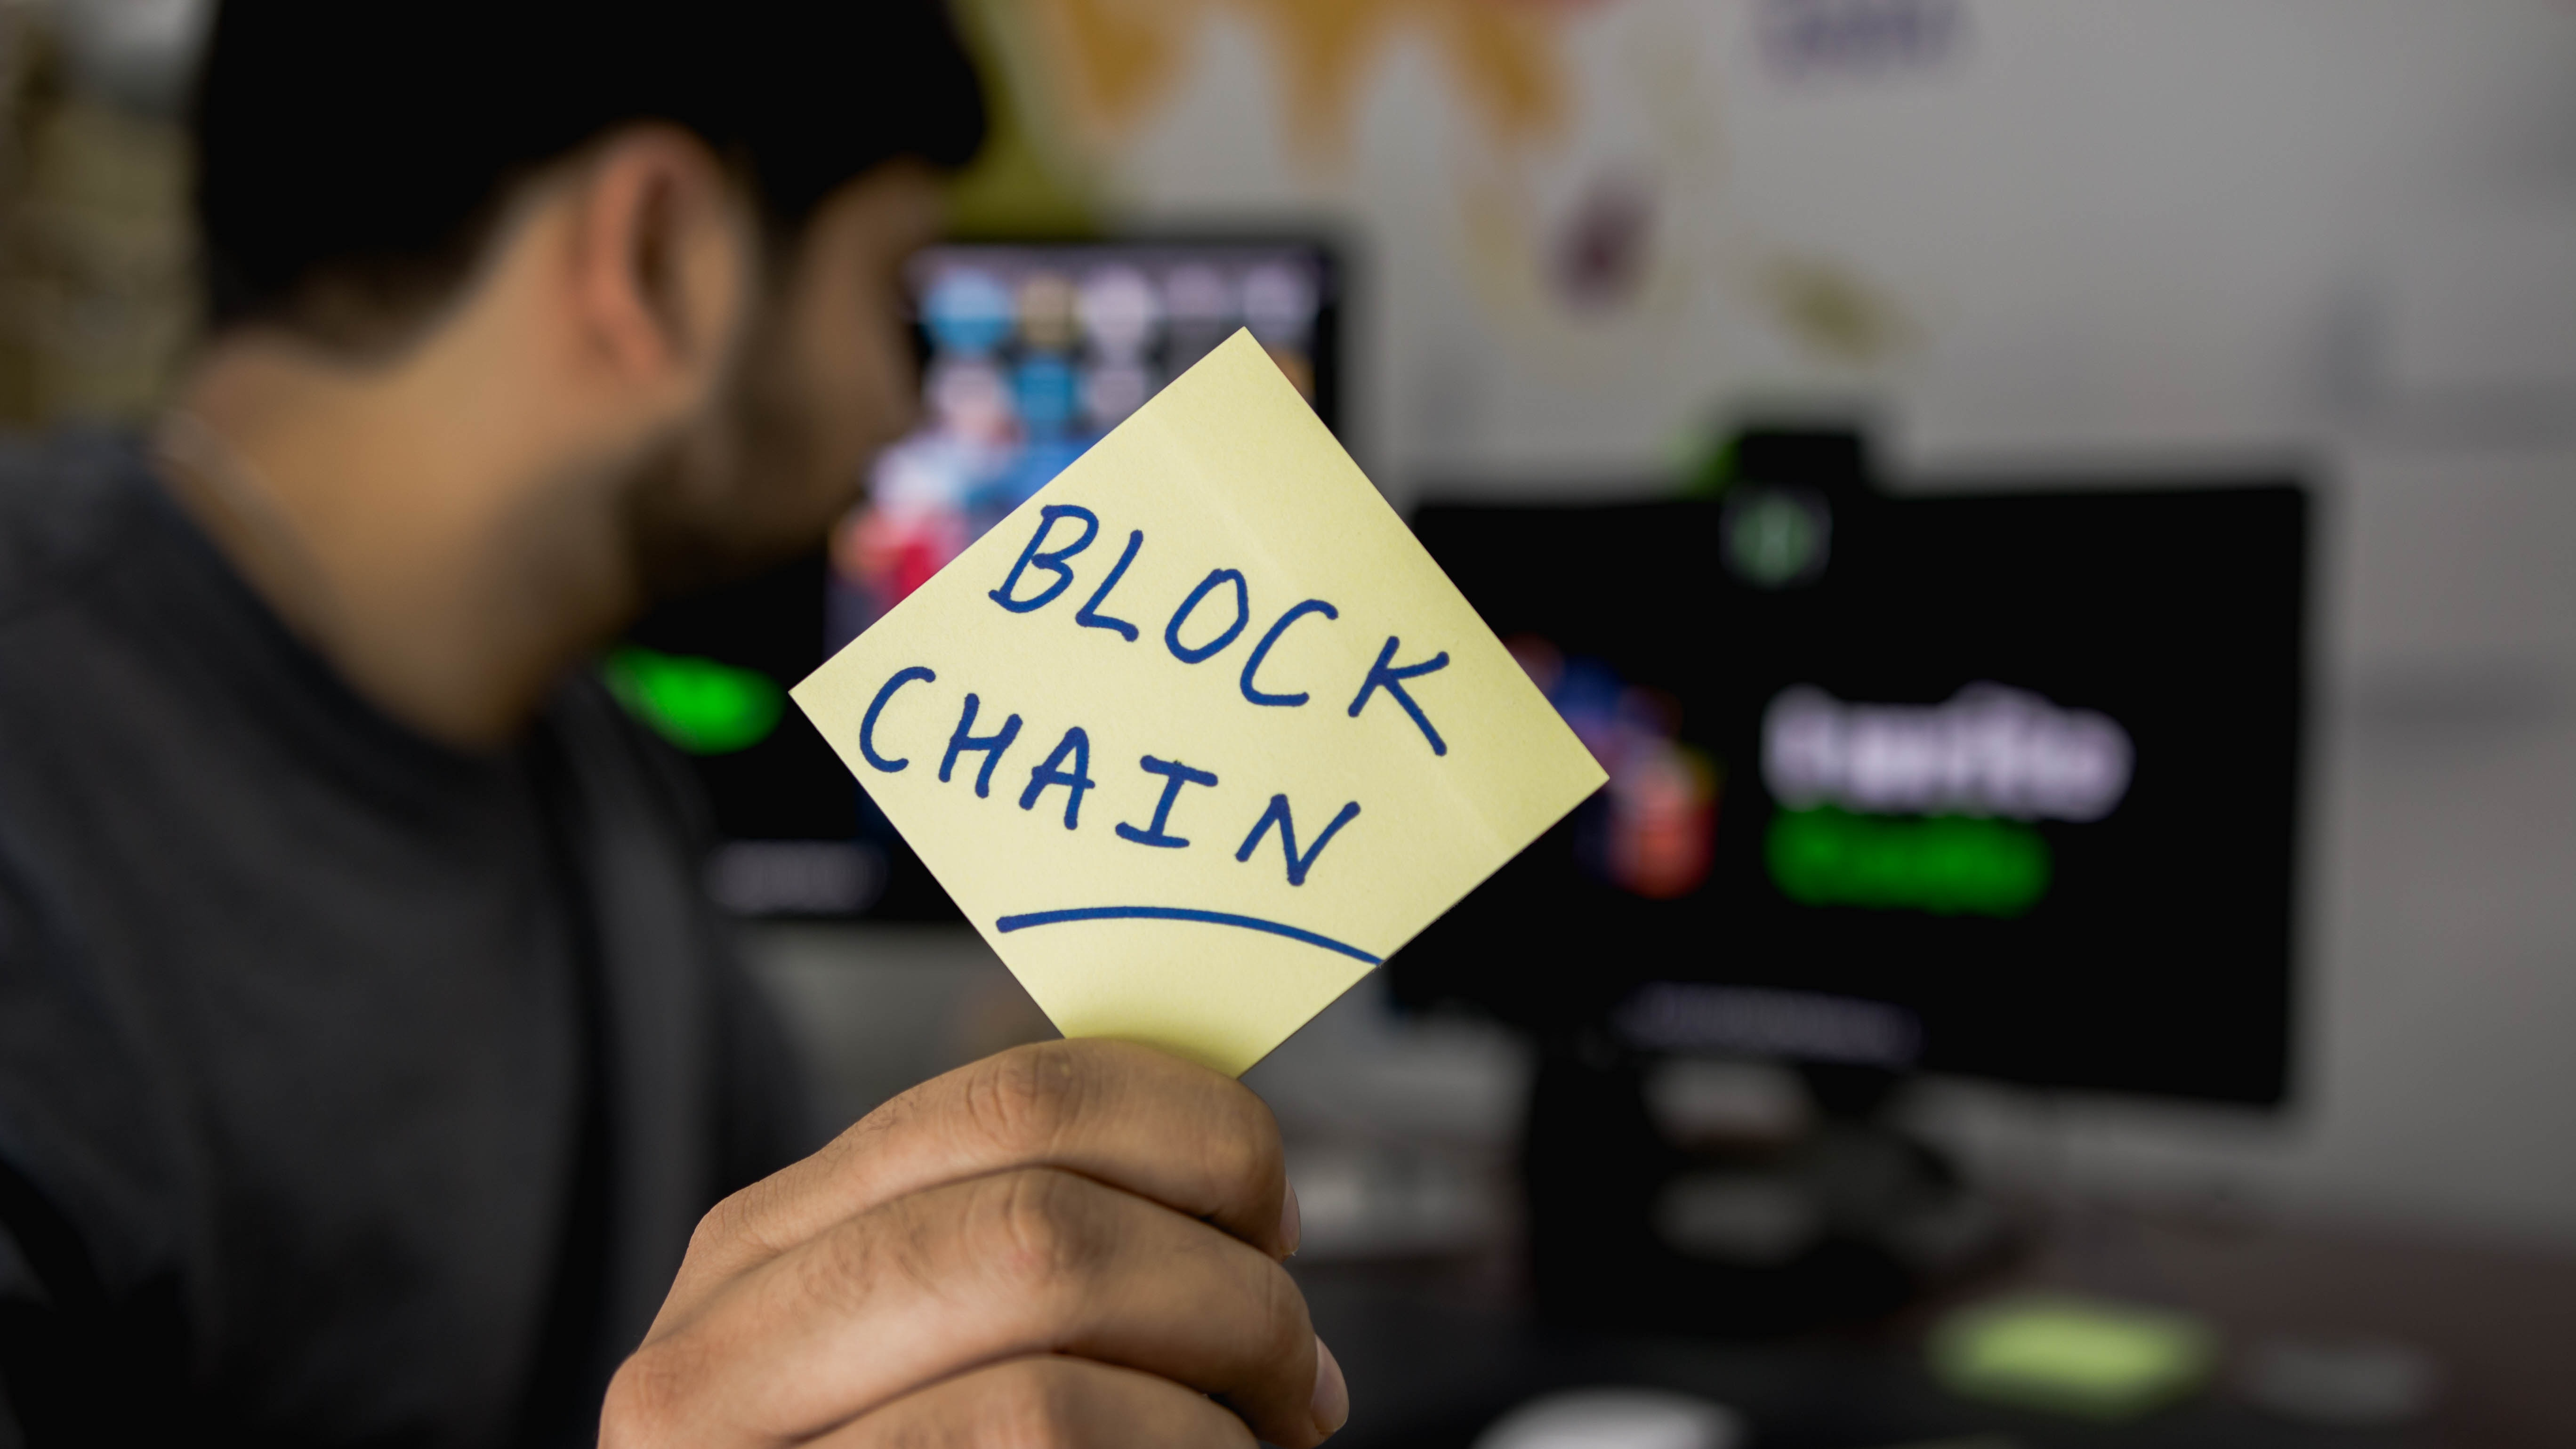 Blurred man sits in front of computer screens holding out a sticky note to the side. In focus, it reads 'block chain'